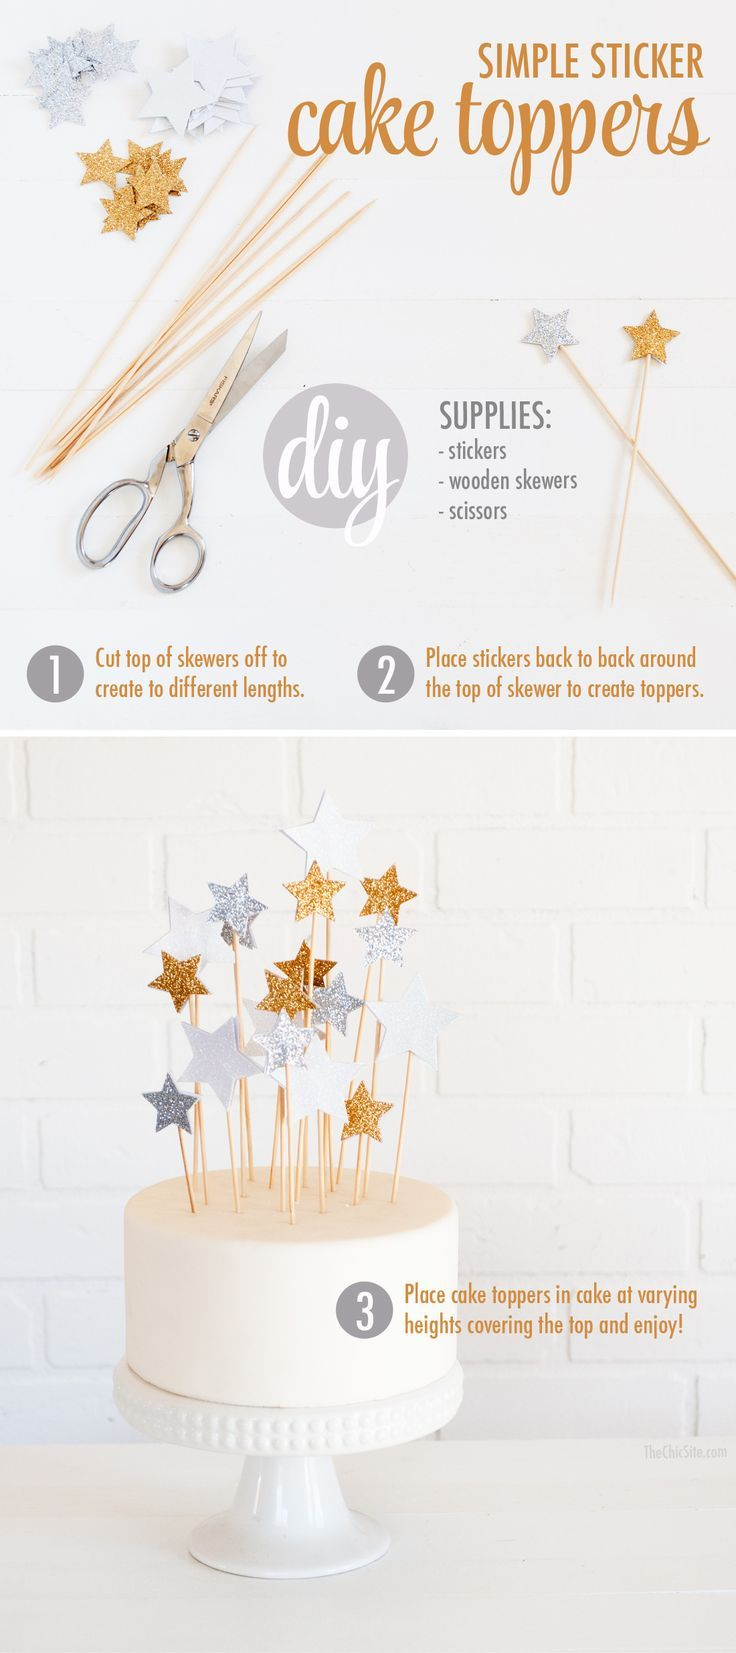 simple cake topper for a kid's birthday cake - DIY tutorial